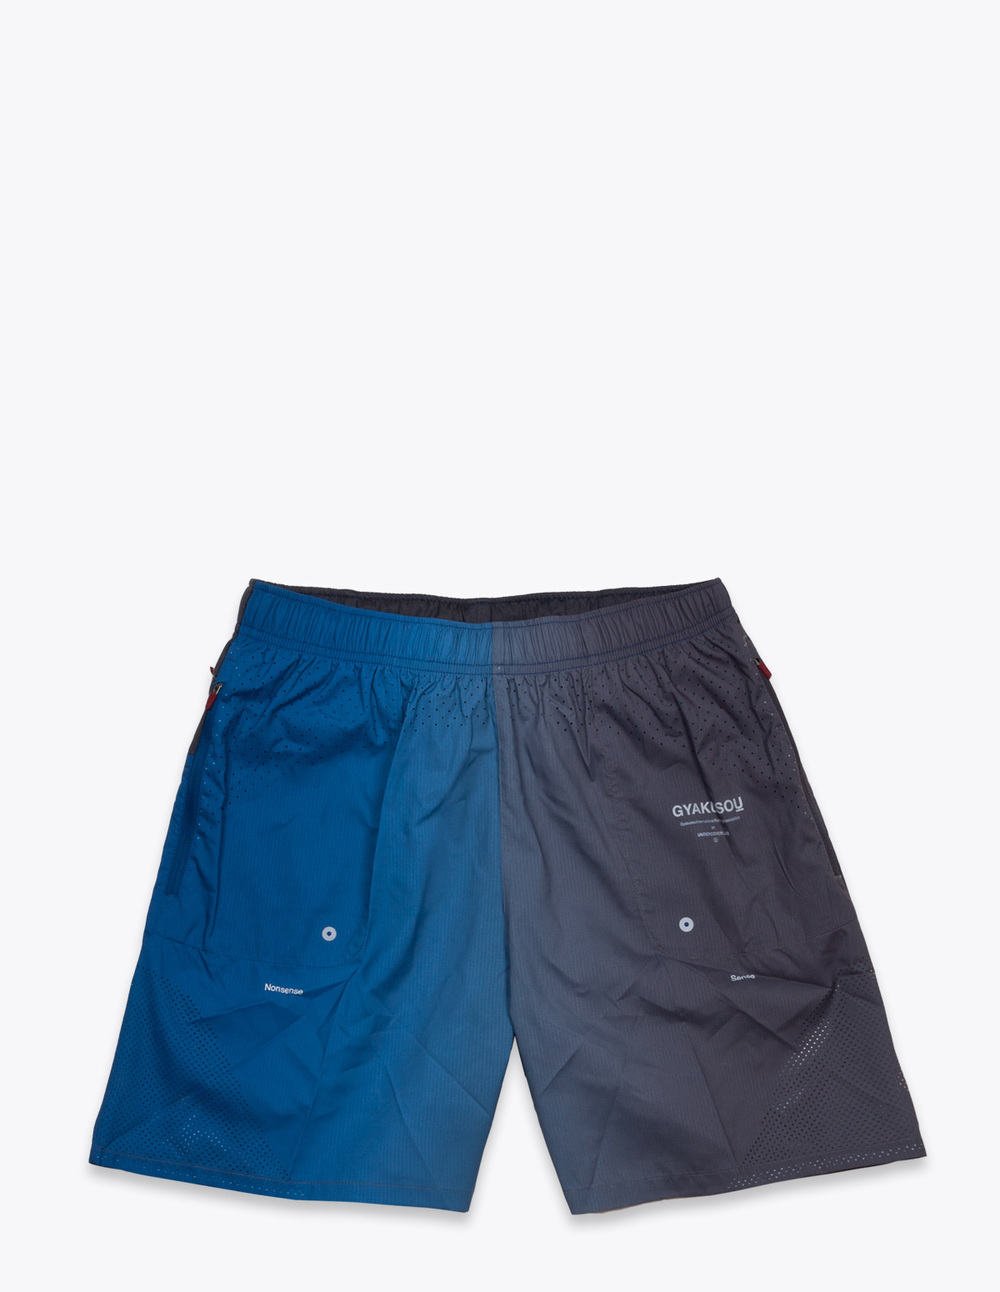 Nike x Undercover Woven Shorts